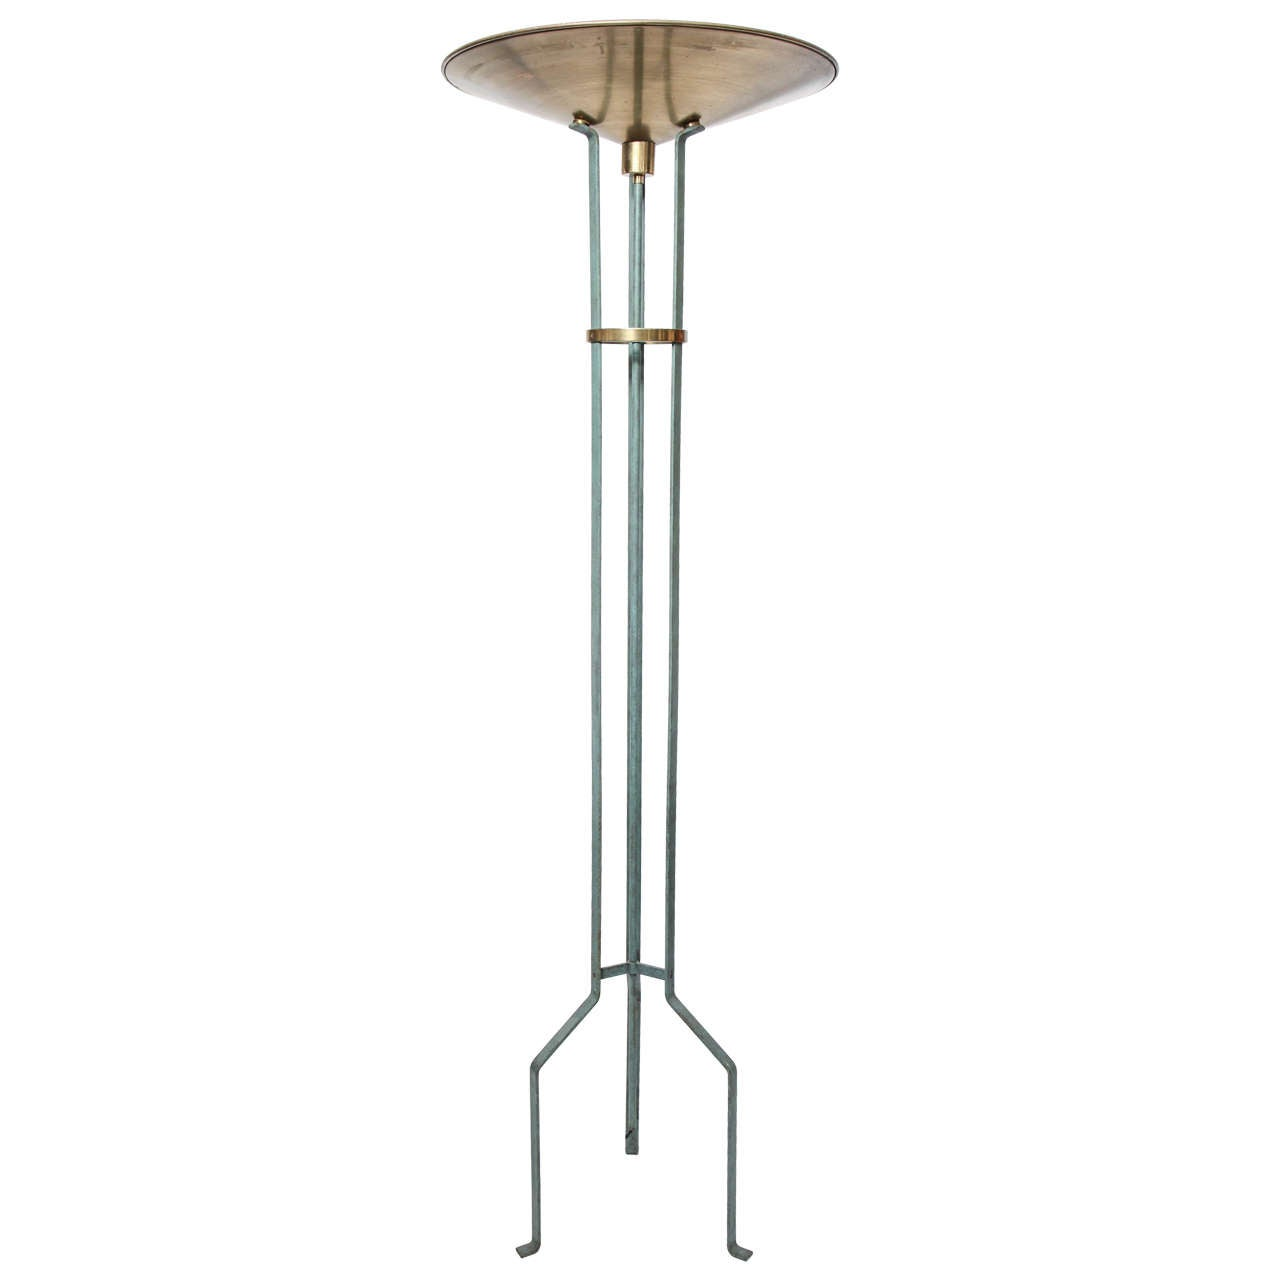 Italian 1970s Modernist Torchere Floor Lamp